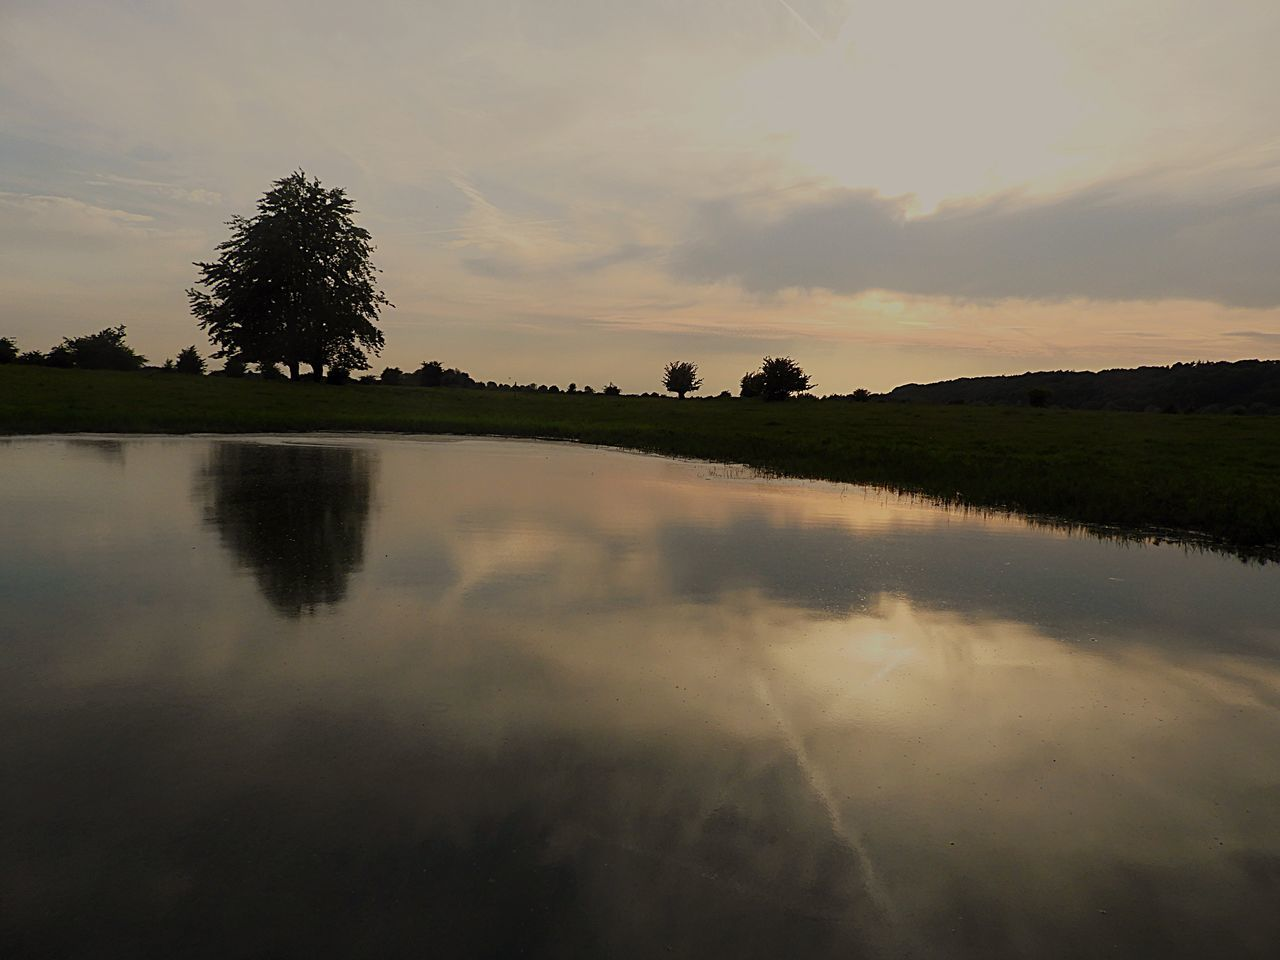 reflection, tree, sunset, sky, nature, tranquil scene, tranquility, beauty in nature, water, cloud - sky, scenics, outdoors, no people, lake, silhouette, day